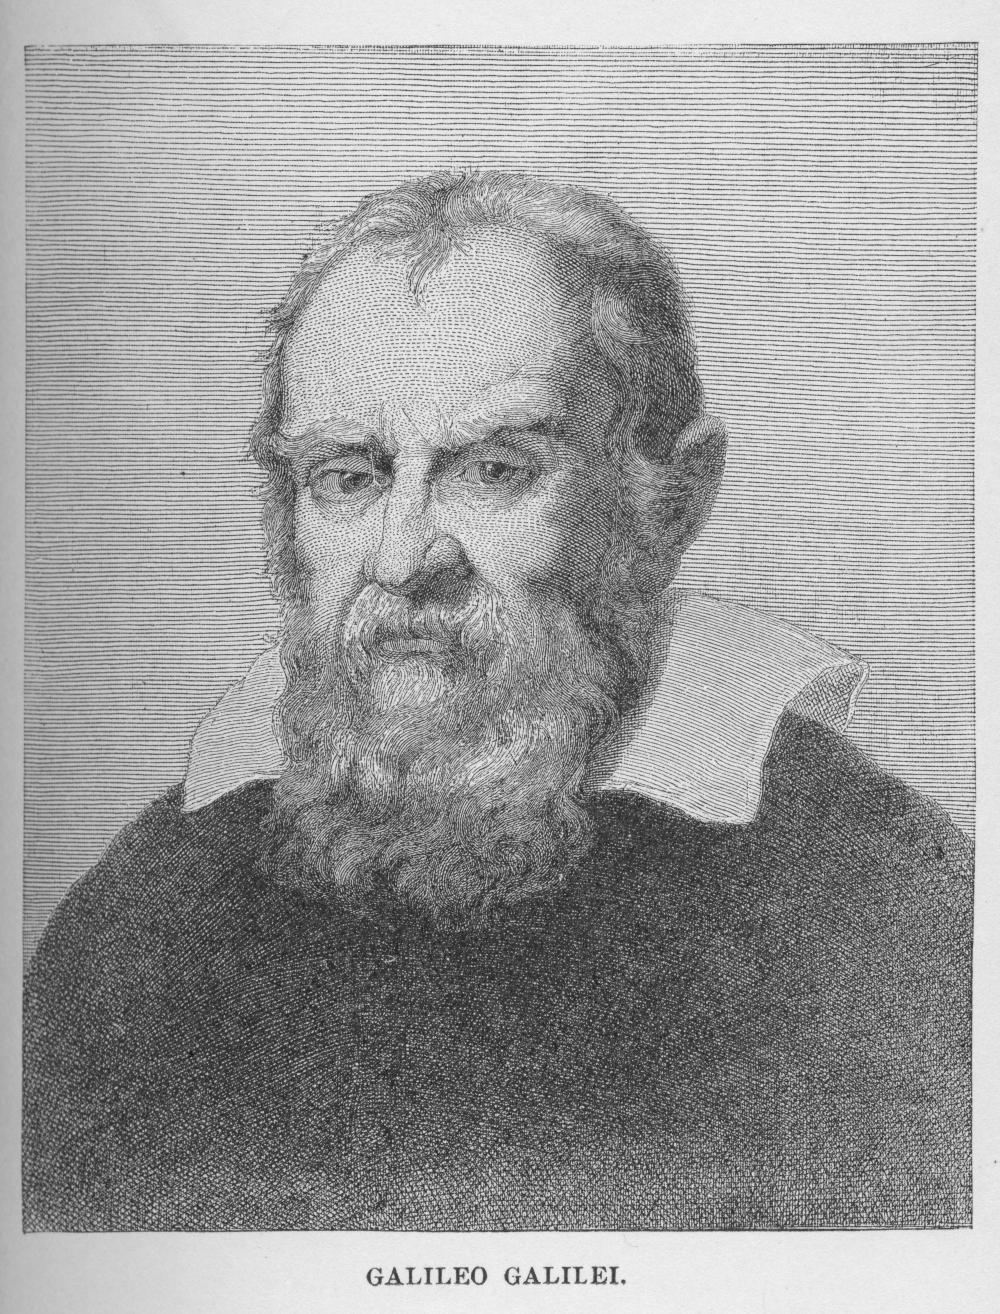 a summary of the life of galileo galilei The trial of galileo galilei galileo galilei  by far the most comprehensive site devoted to galileo's life and work is the galileo project at rice university.